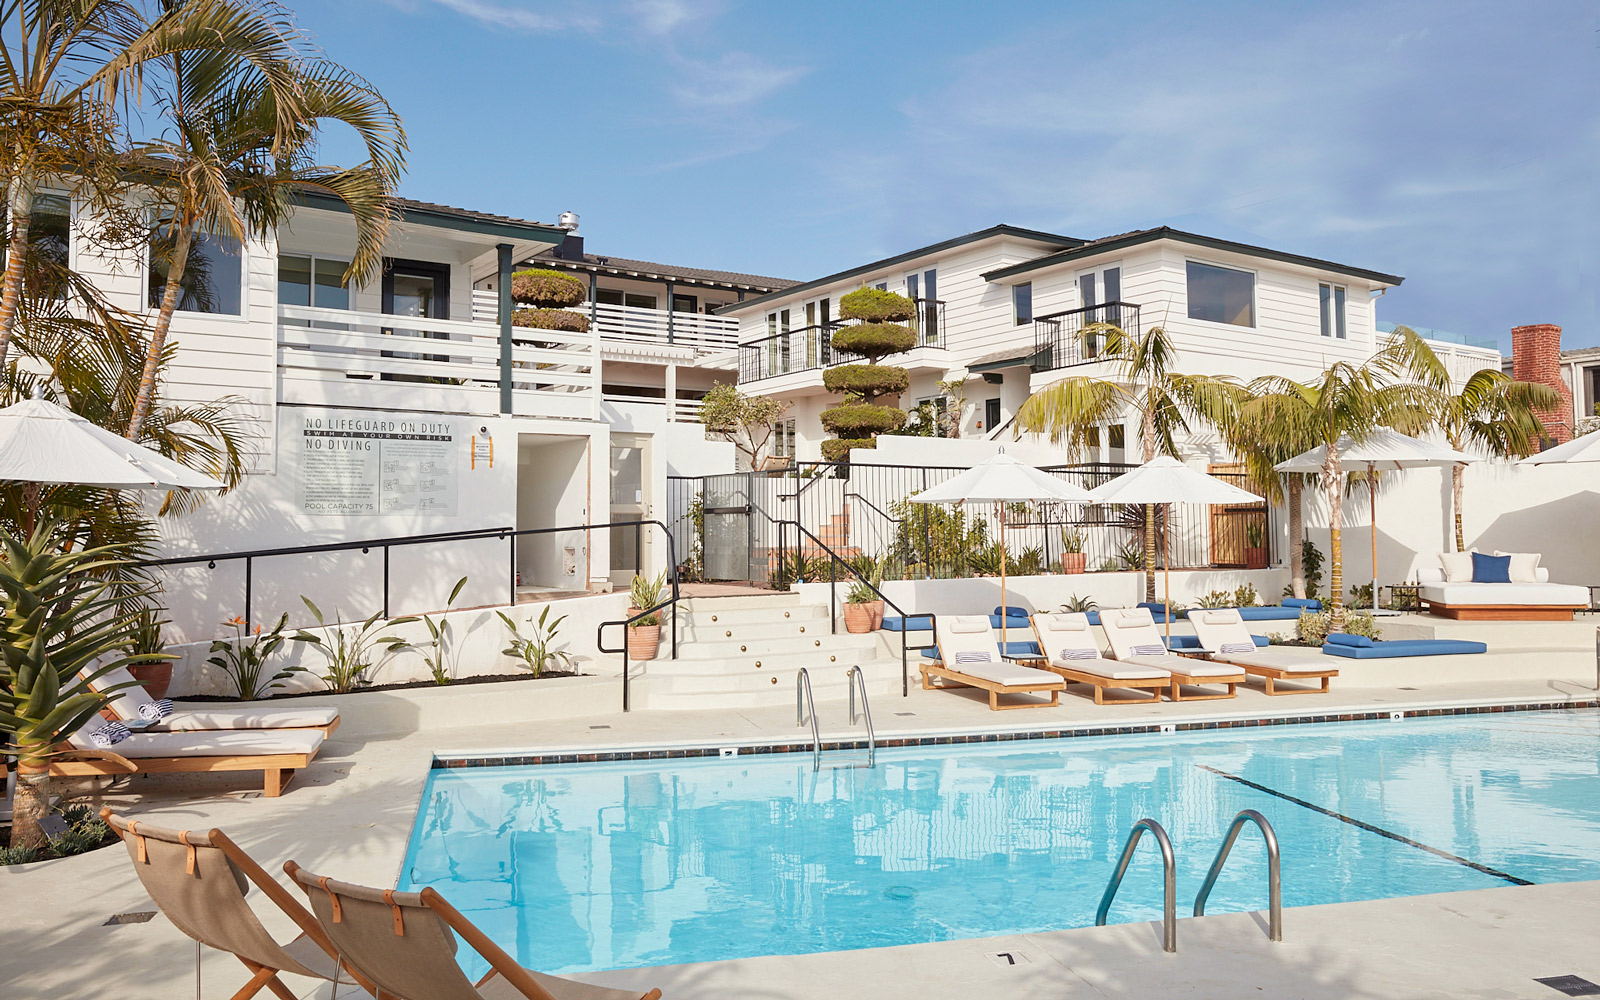 Live The Process Wellness at Hotel Joaquin in Laguna Beach